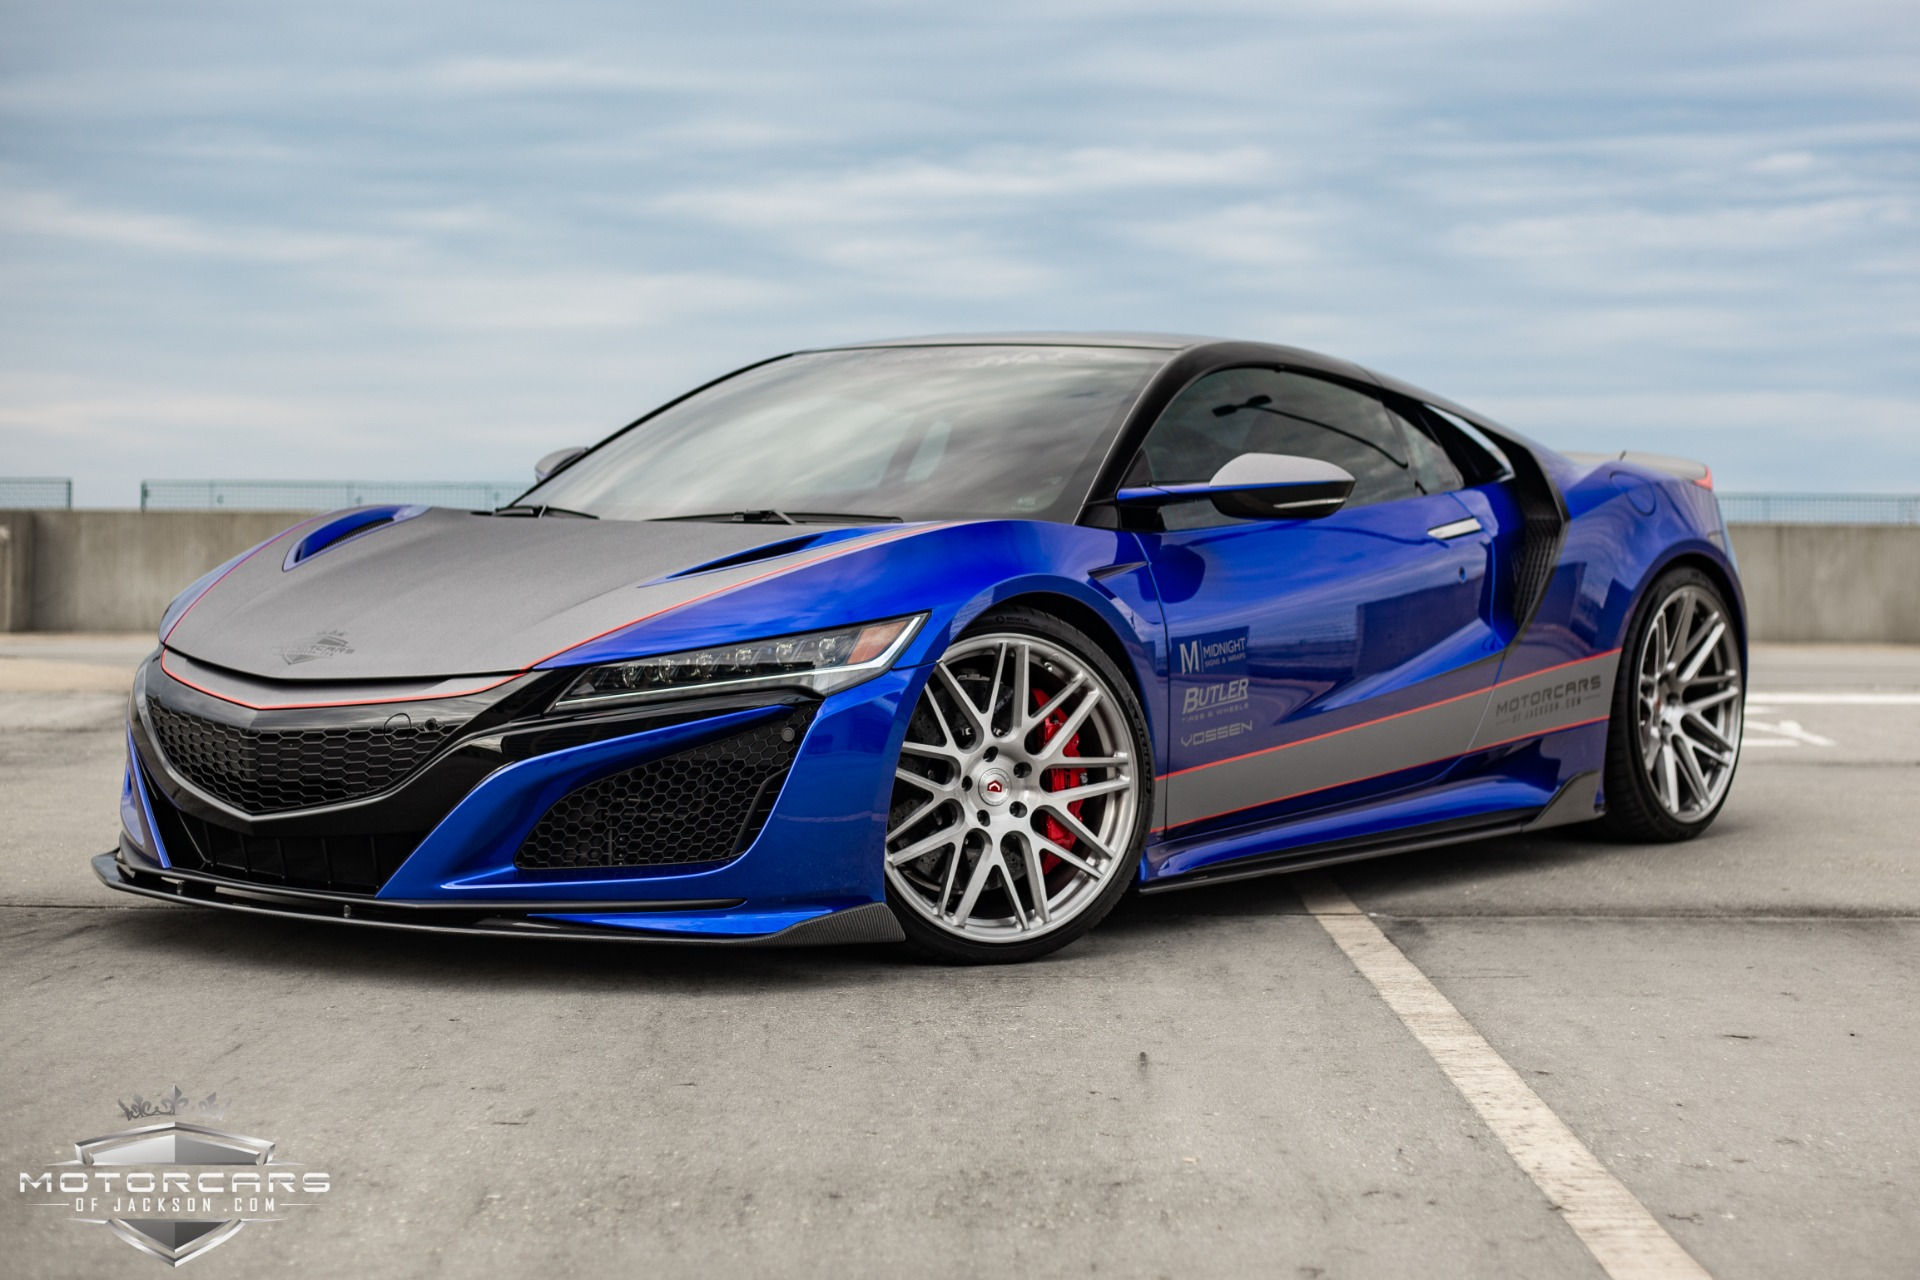 2017 Acura NSX Full Custom Show Car Stock # HY000065 for ...